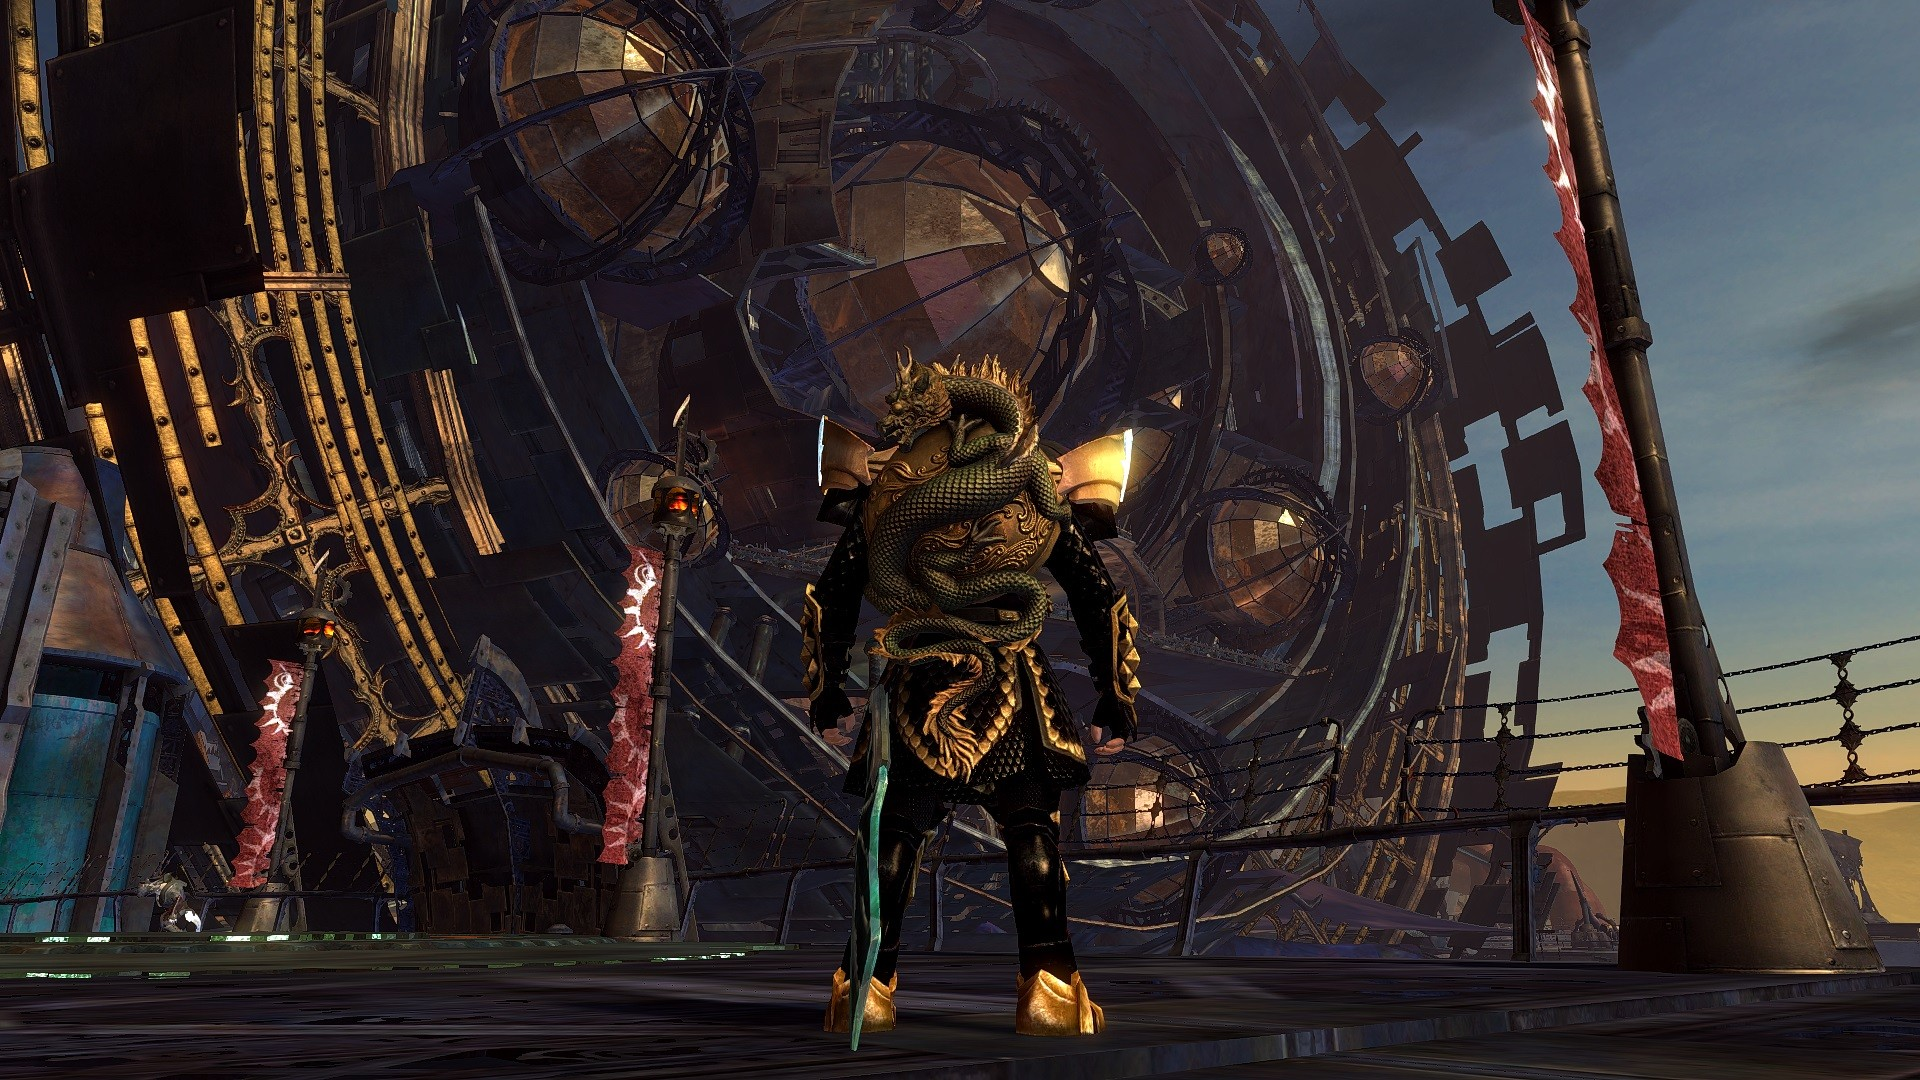 GW2 Jade Shield on my Guardian!